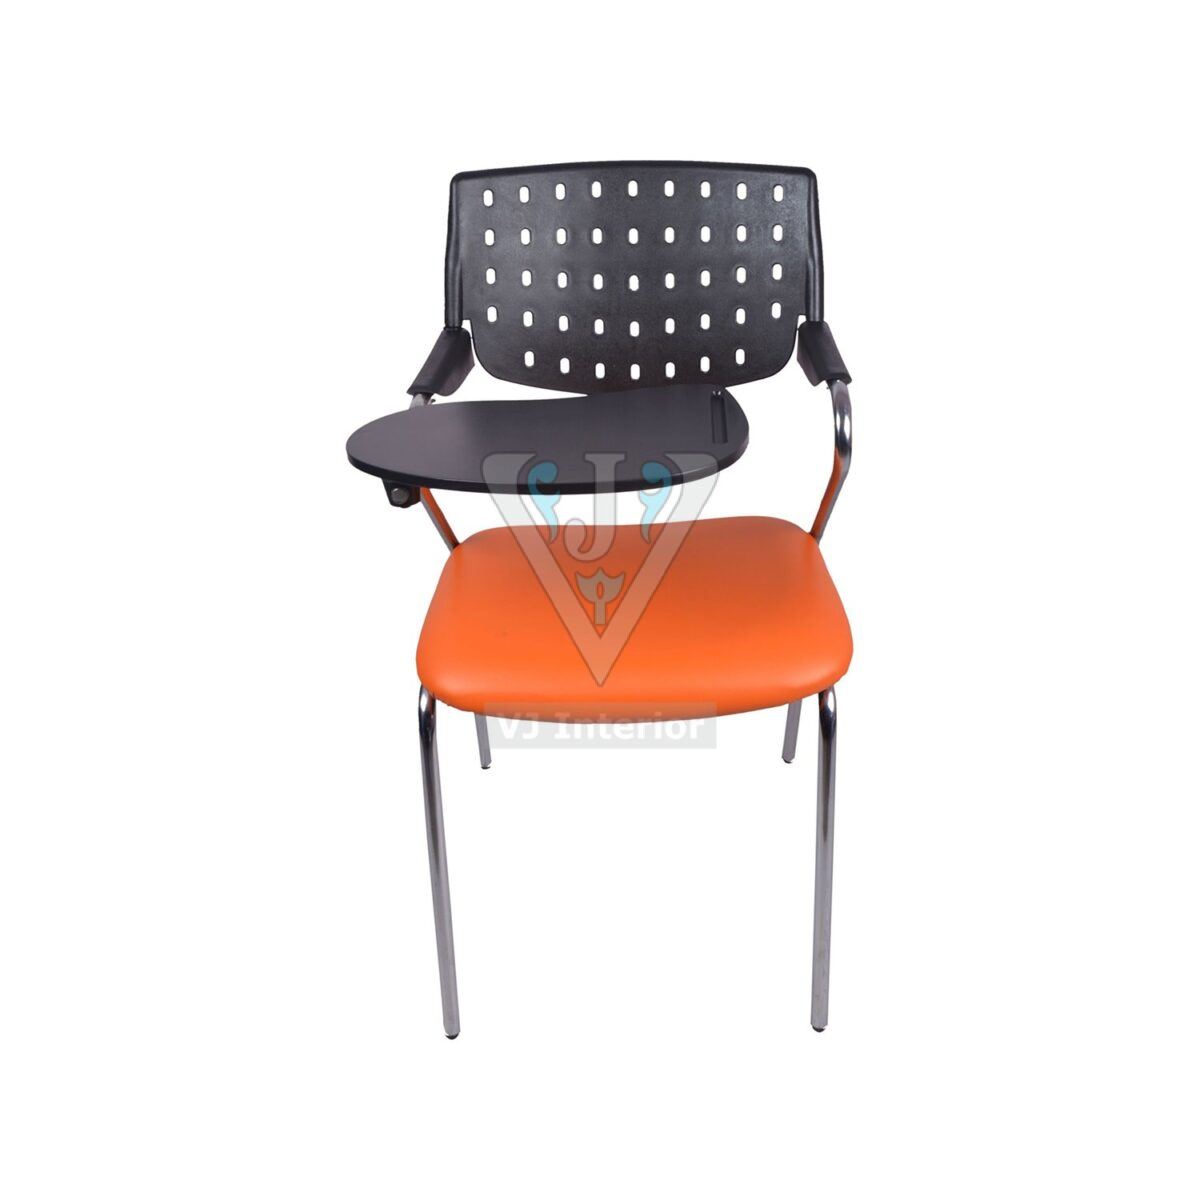 THE ALUMNOS WRITING CHAIR BLACK AND ORANGE